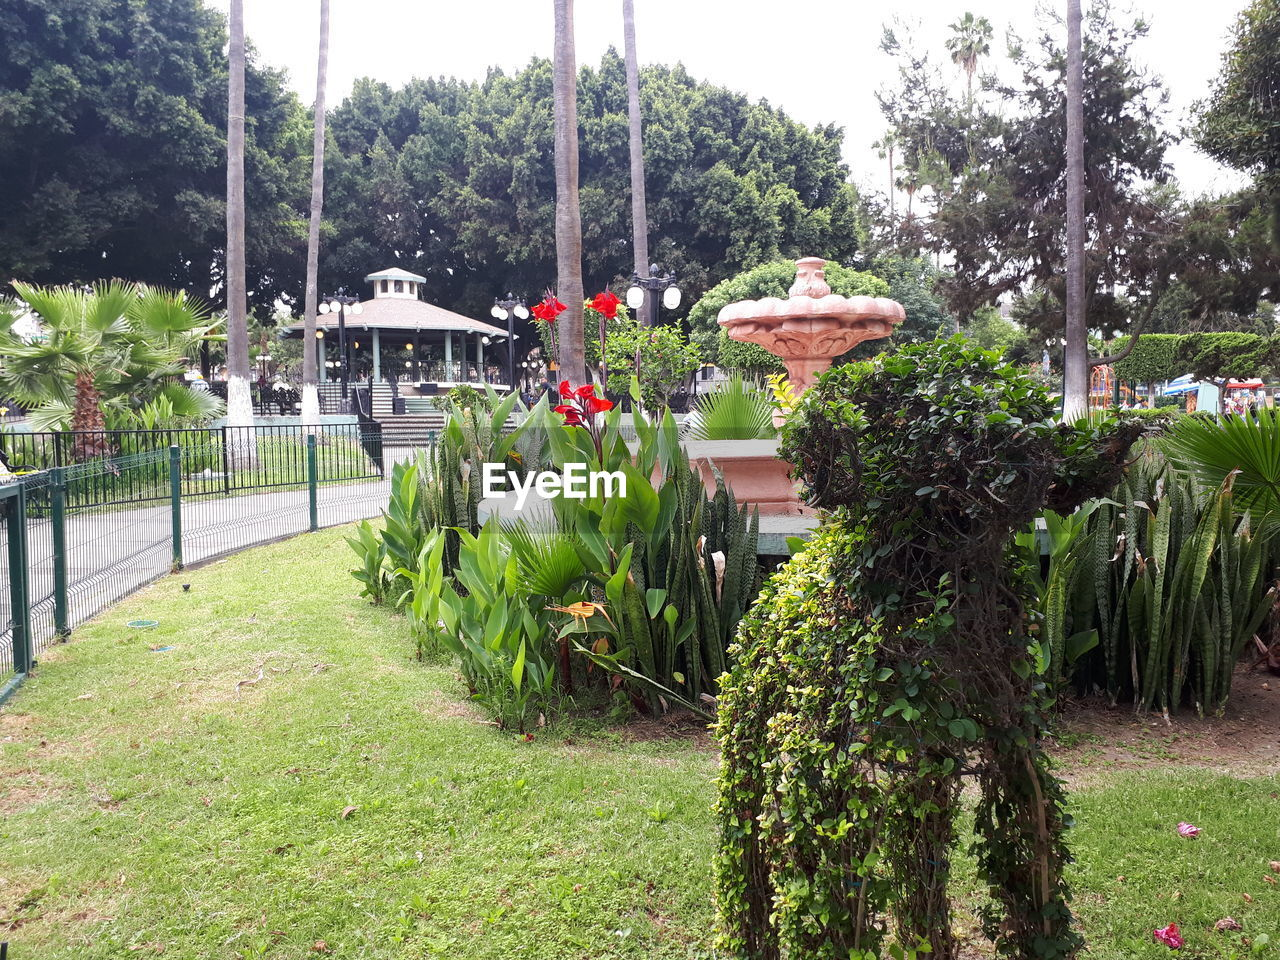 plant, tree, nature, green color, growth, flower, day, park, flowering plant, grass, architecture, park - man made space, no people, built structure, outdoors, beauty in nature, front or back yard, seat, garden, garden path